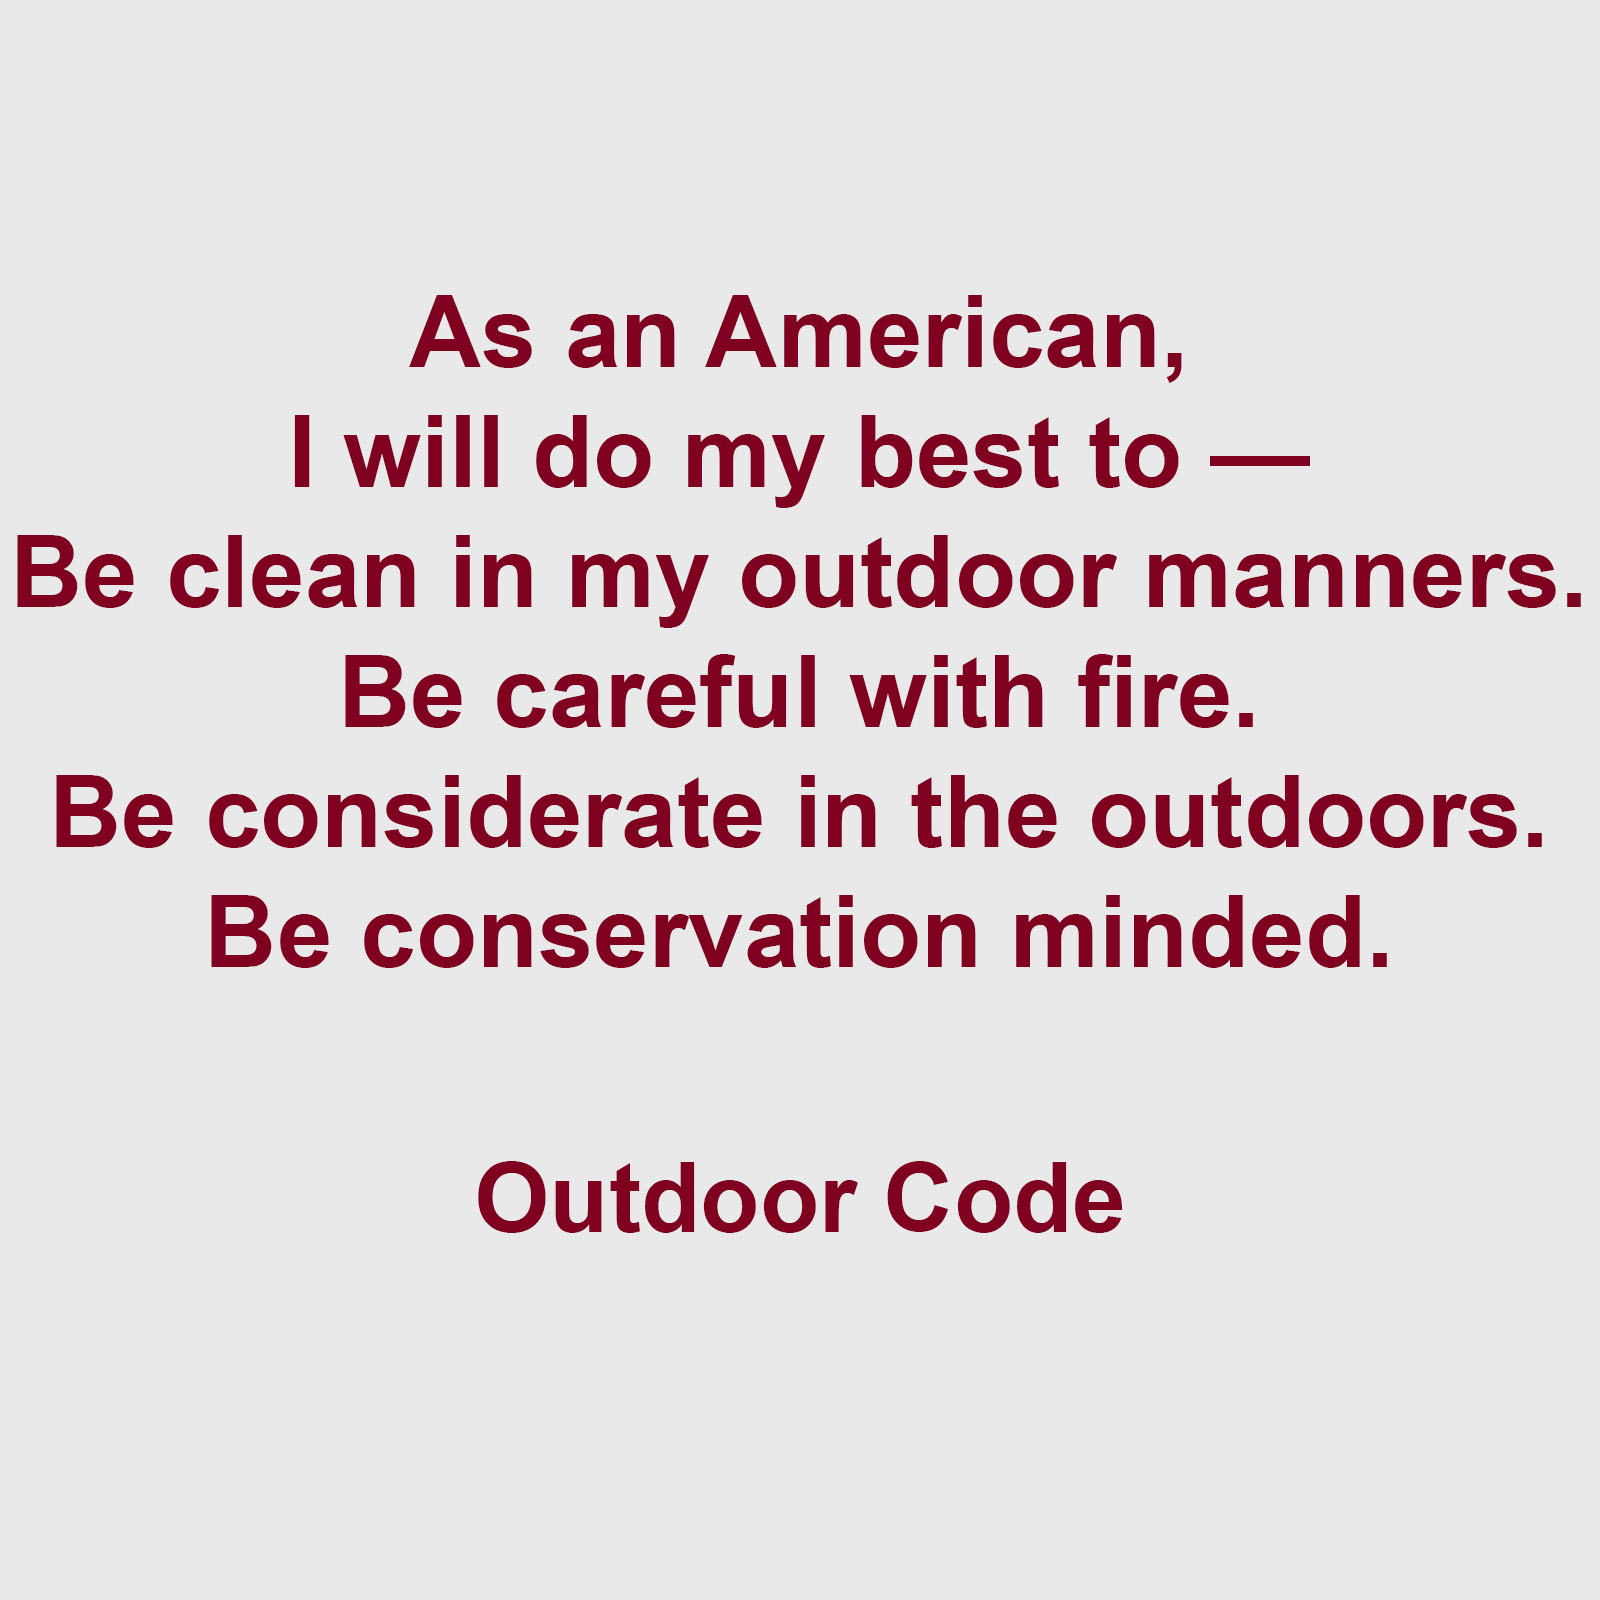 Crafty image with regard to outdoor code printable